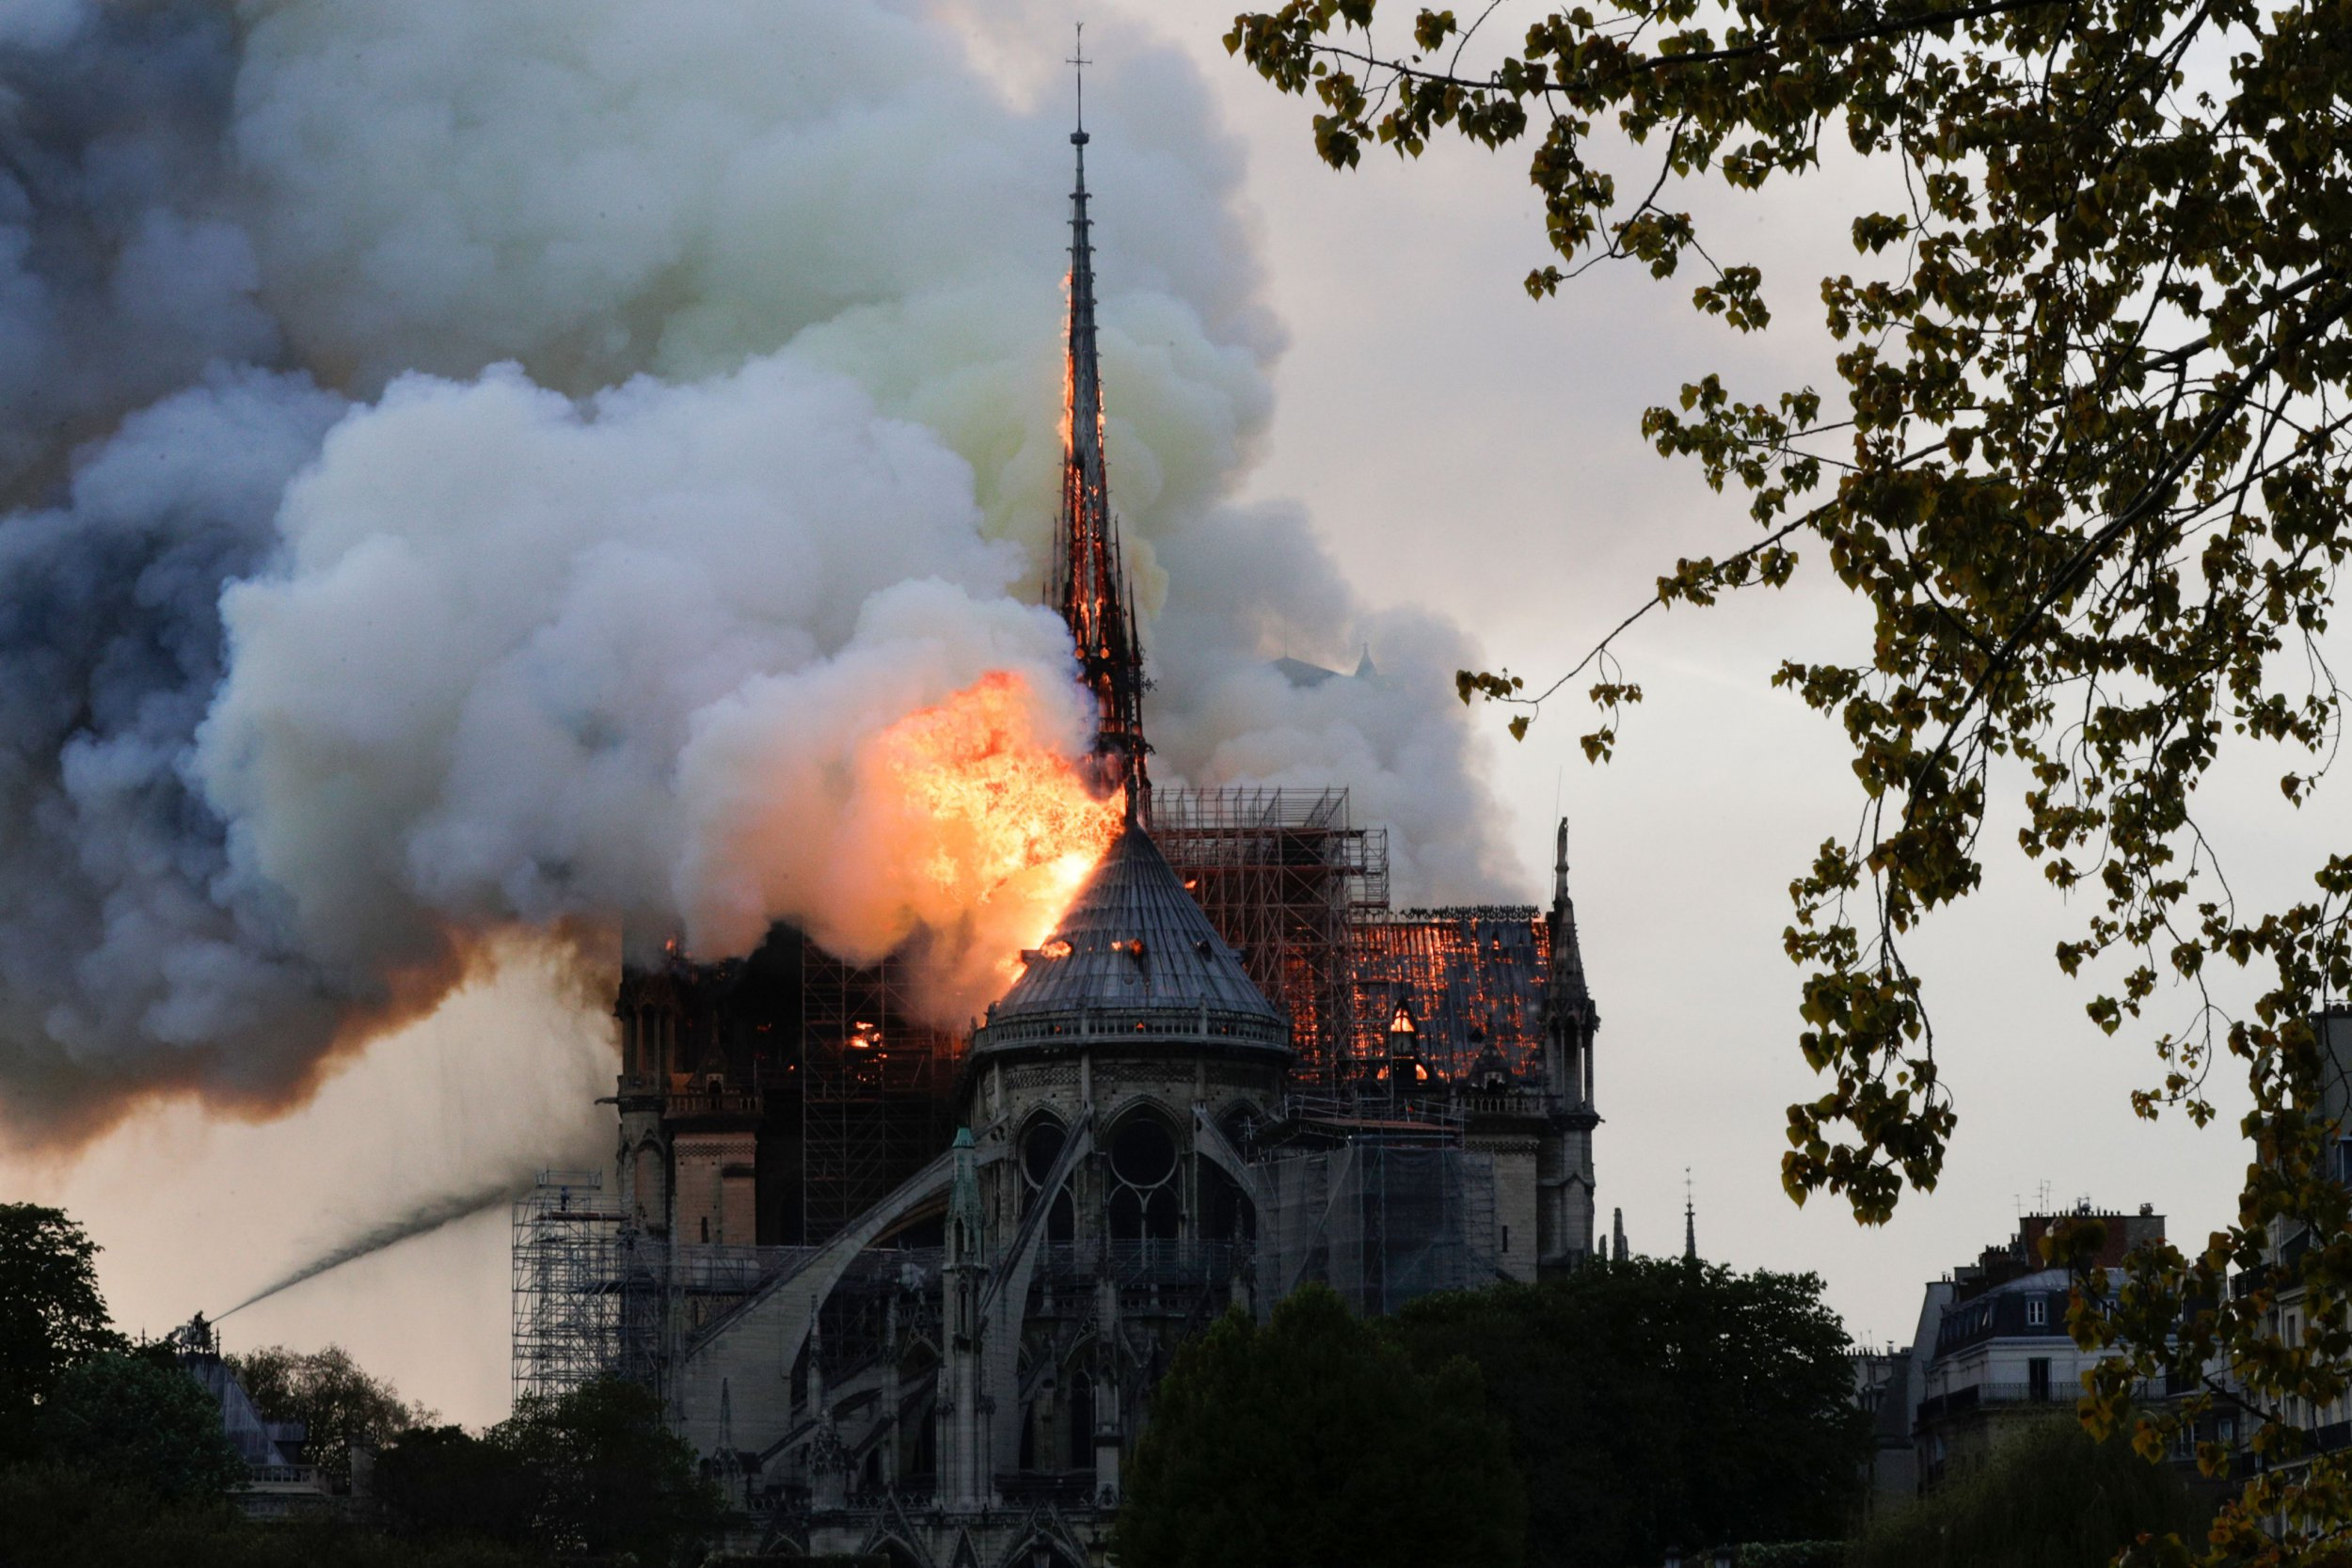 Notre Dame donation page raises £1,700,000 in less than 24 hours